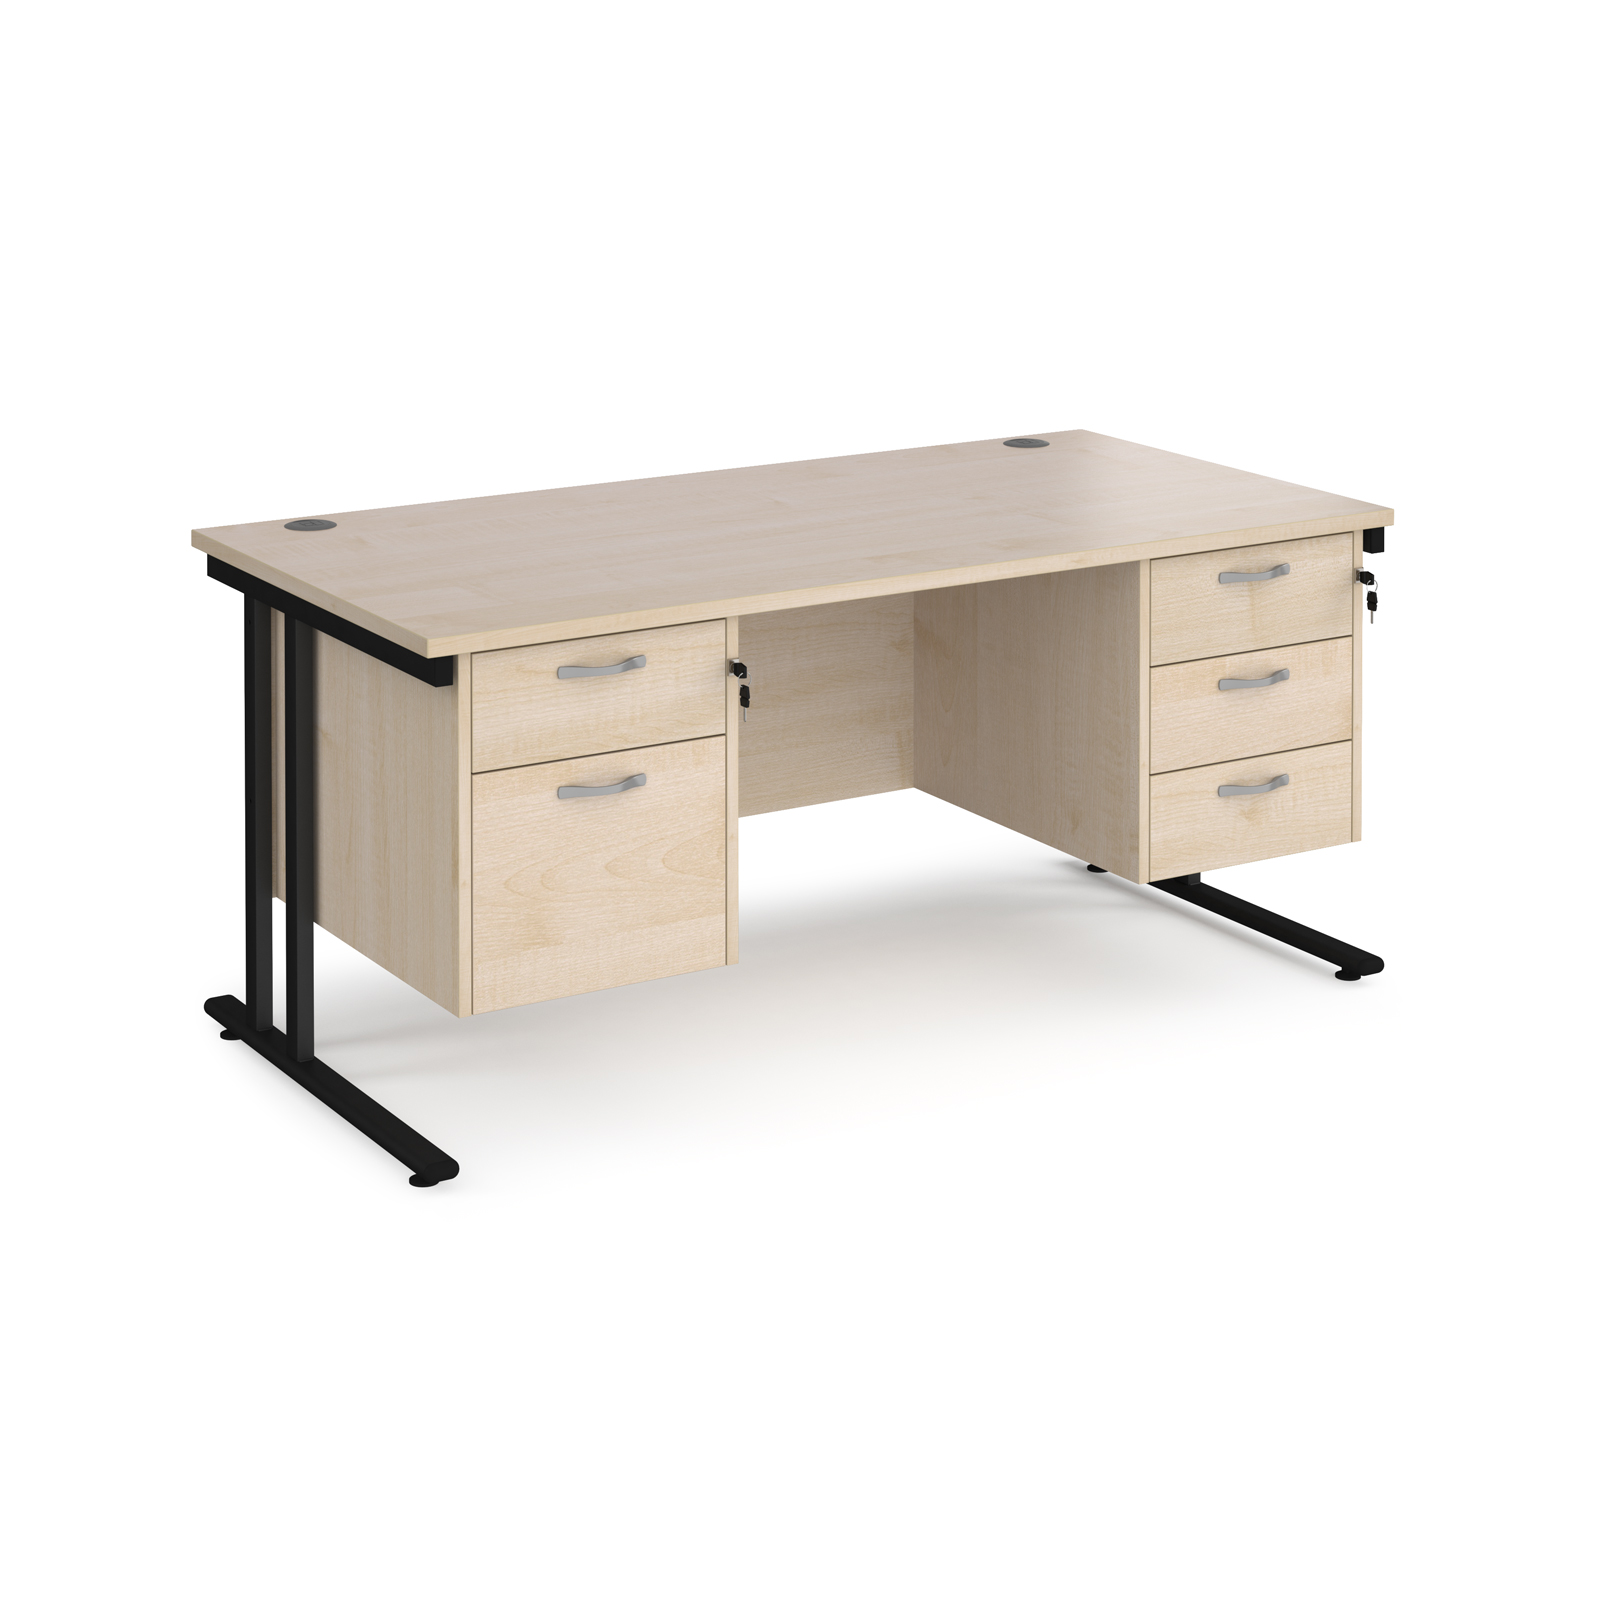 Maestro 25 straight desk 1600mm x 800mm with 2 and 3 drawer pedestals - black cantilever leg frame, maple top